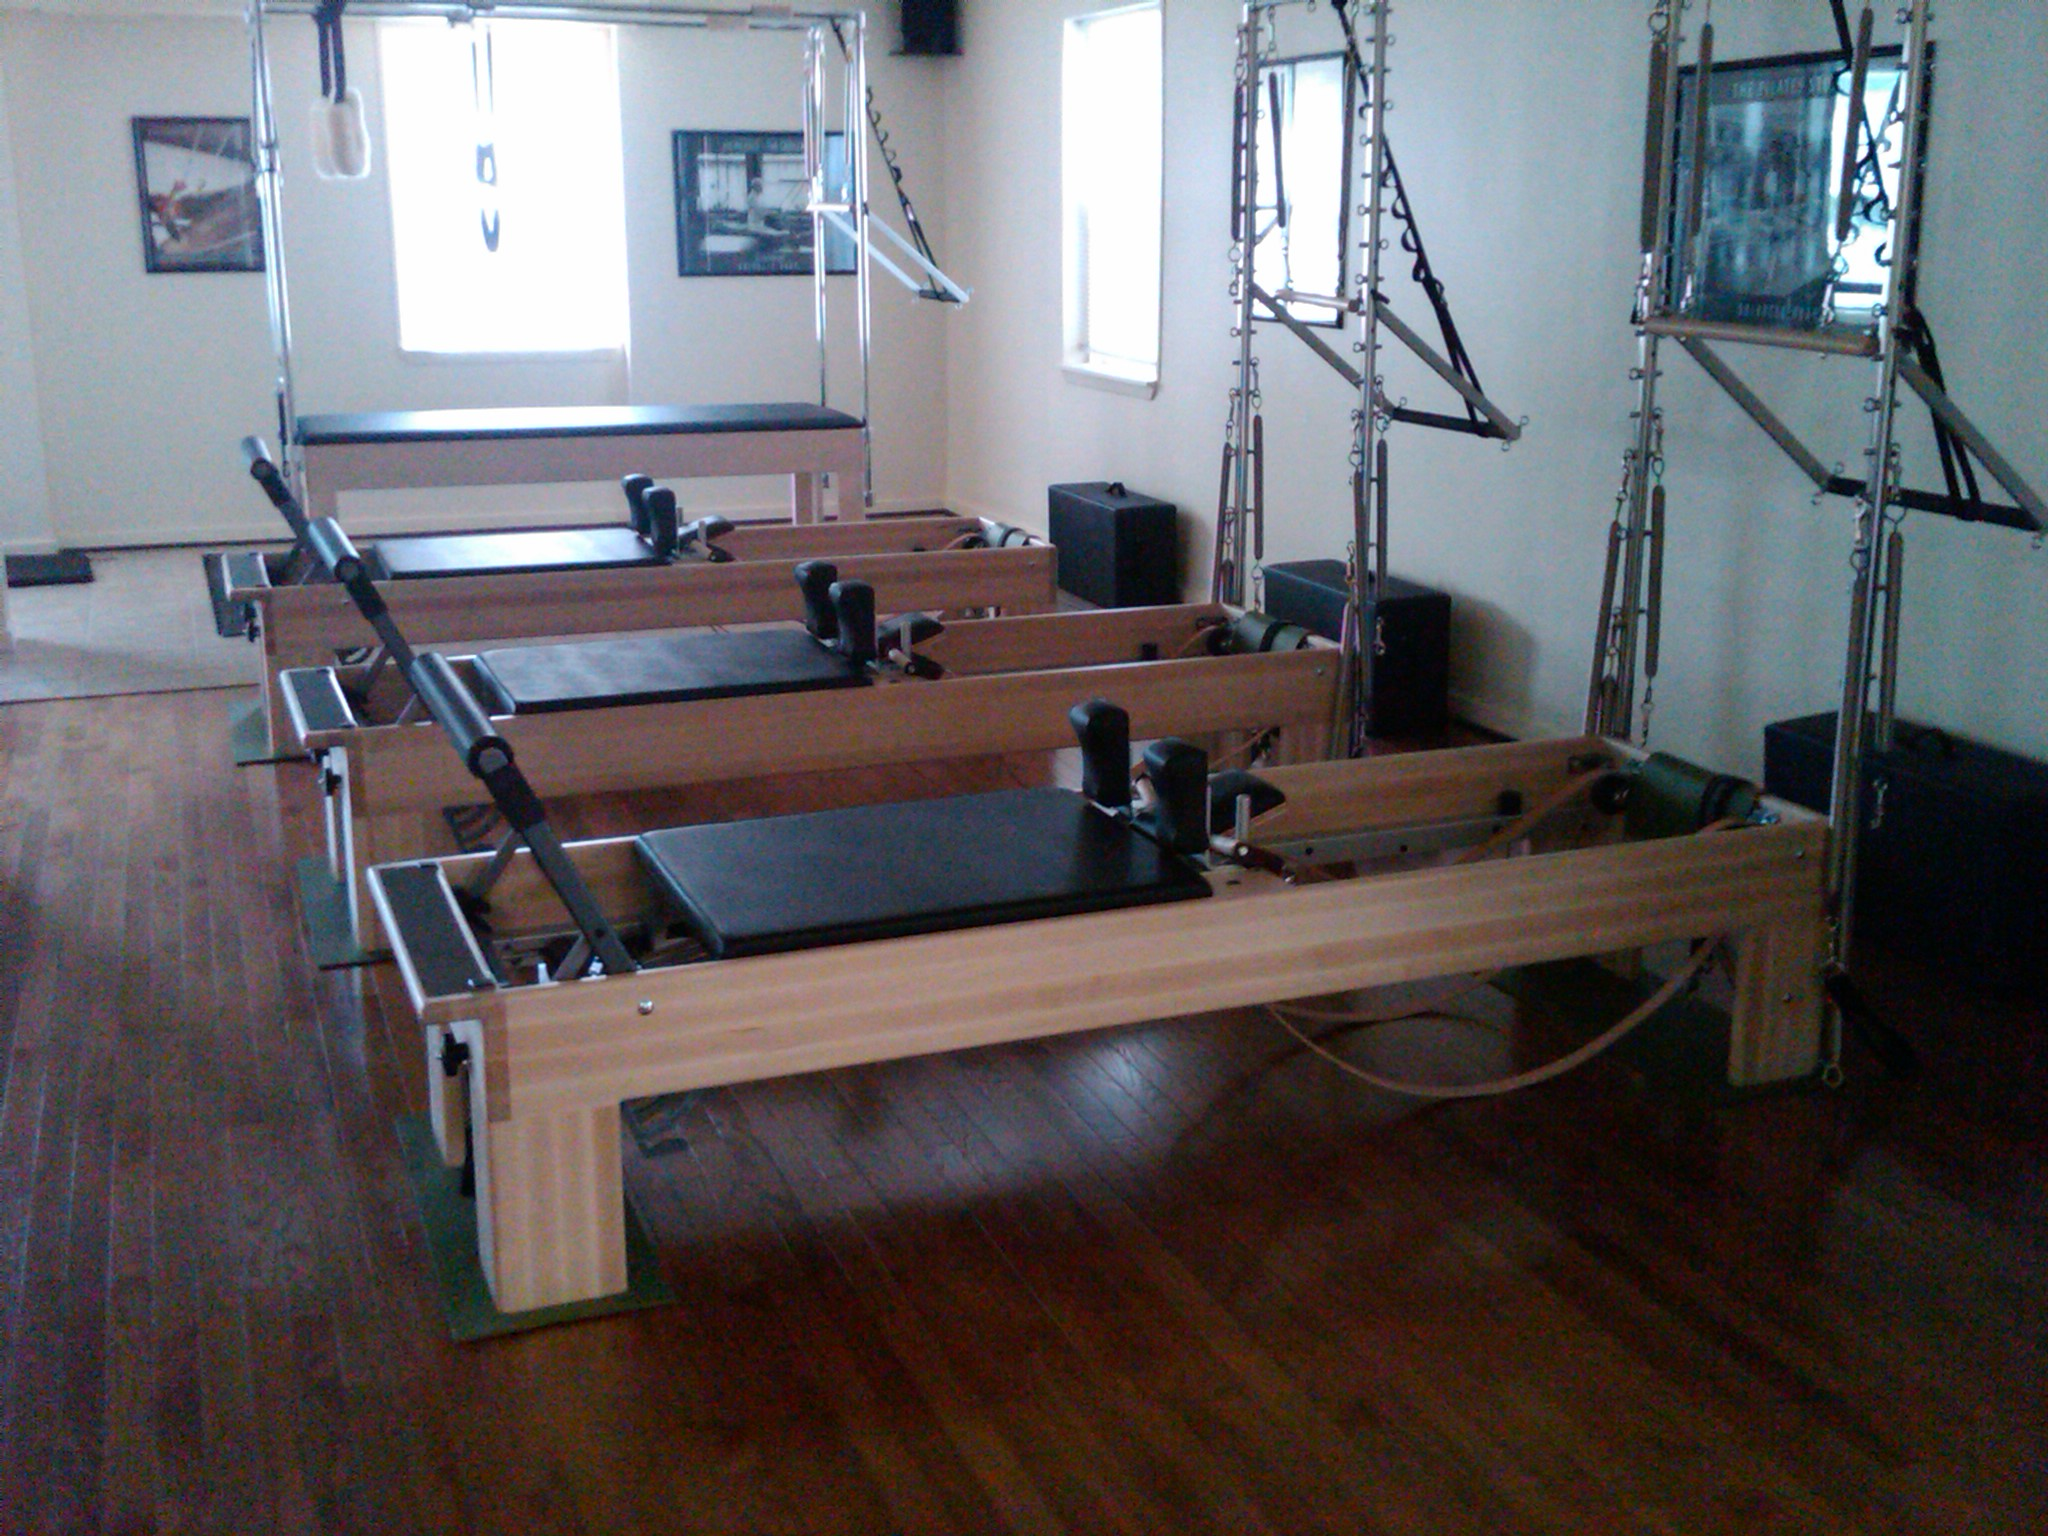 Greensboro Pilates Equipment